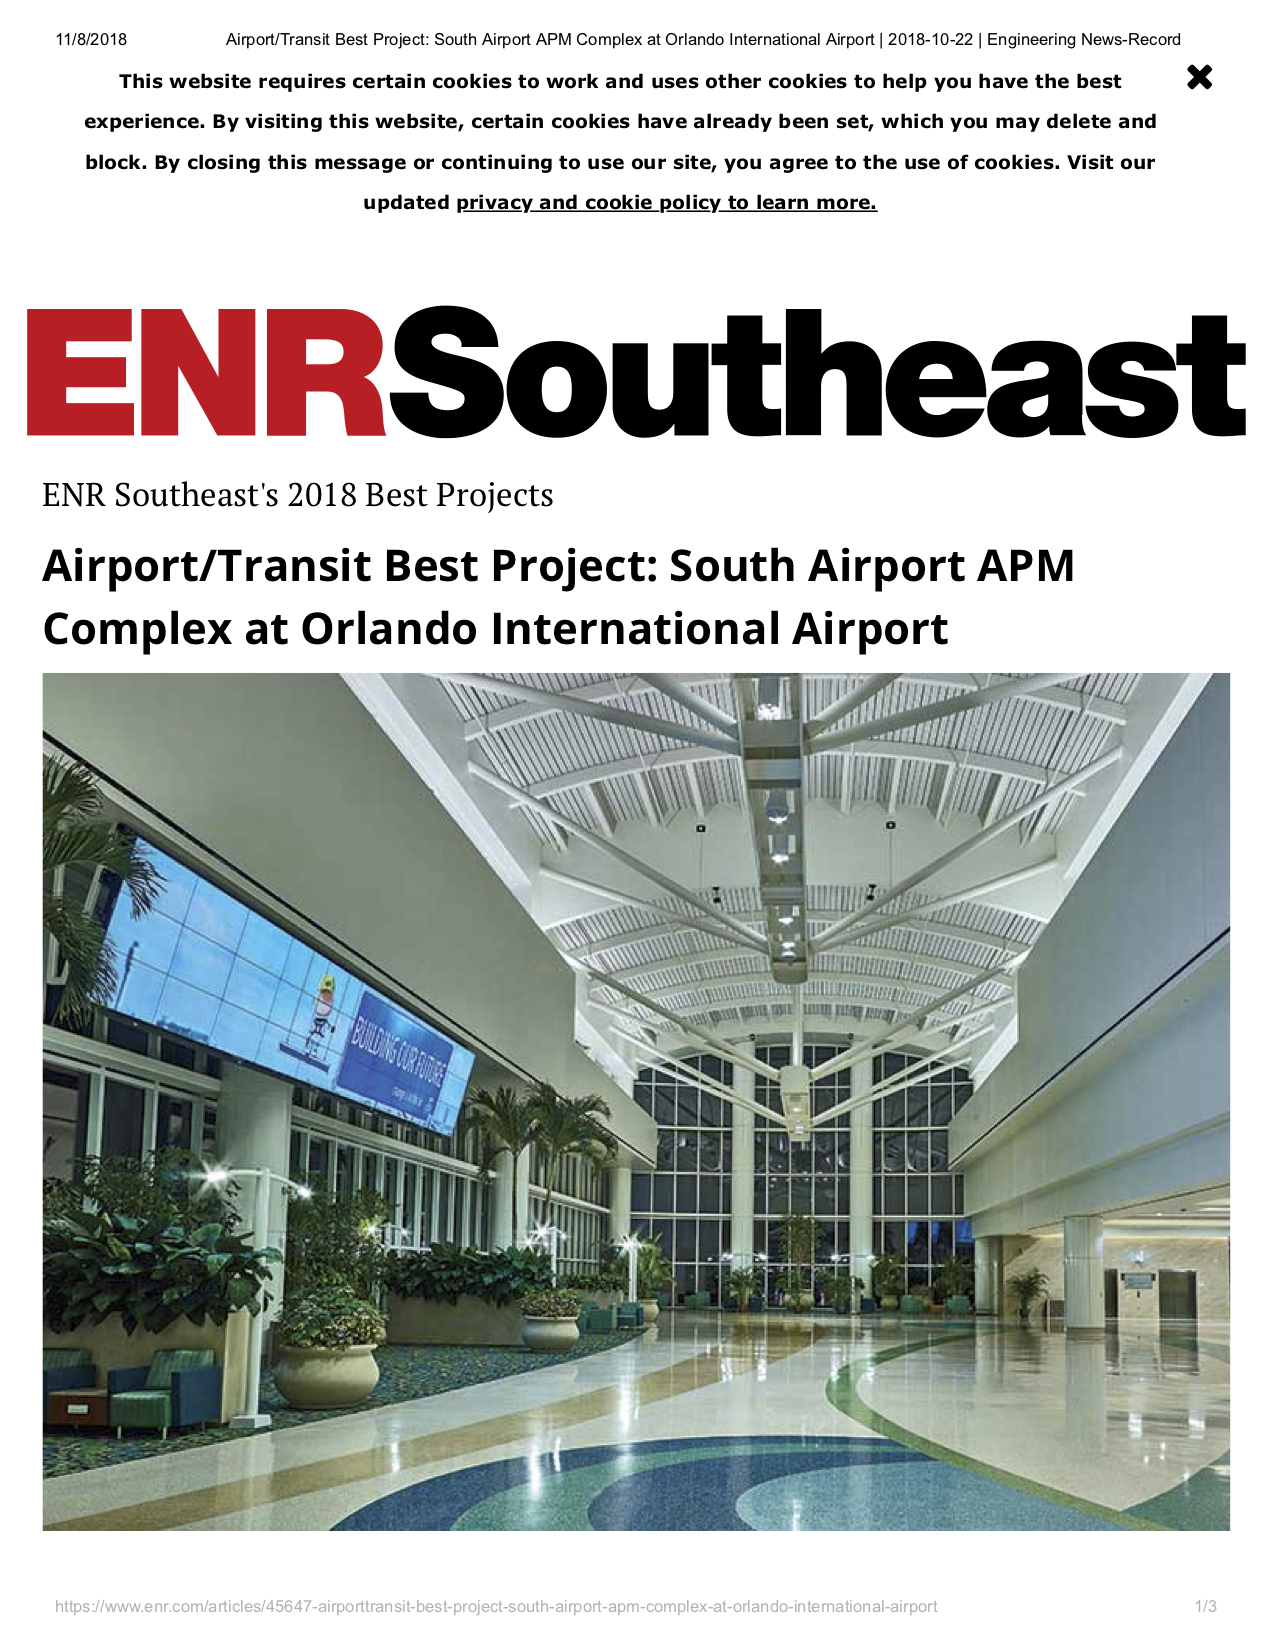 Airport_Transit Best Project_ South Airport APM Complex at Orlando International Airport _ 2018-10-22 _ Engineering News-Record